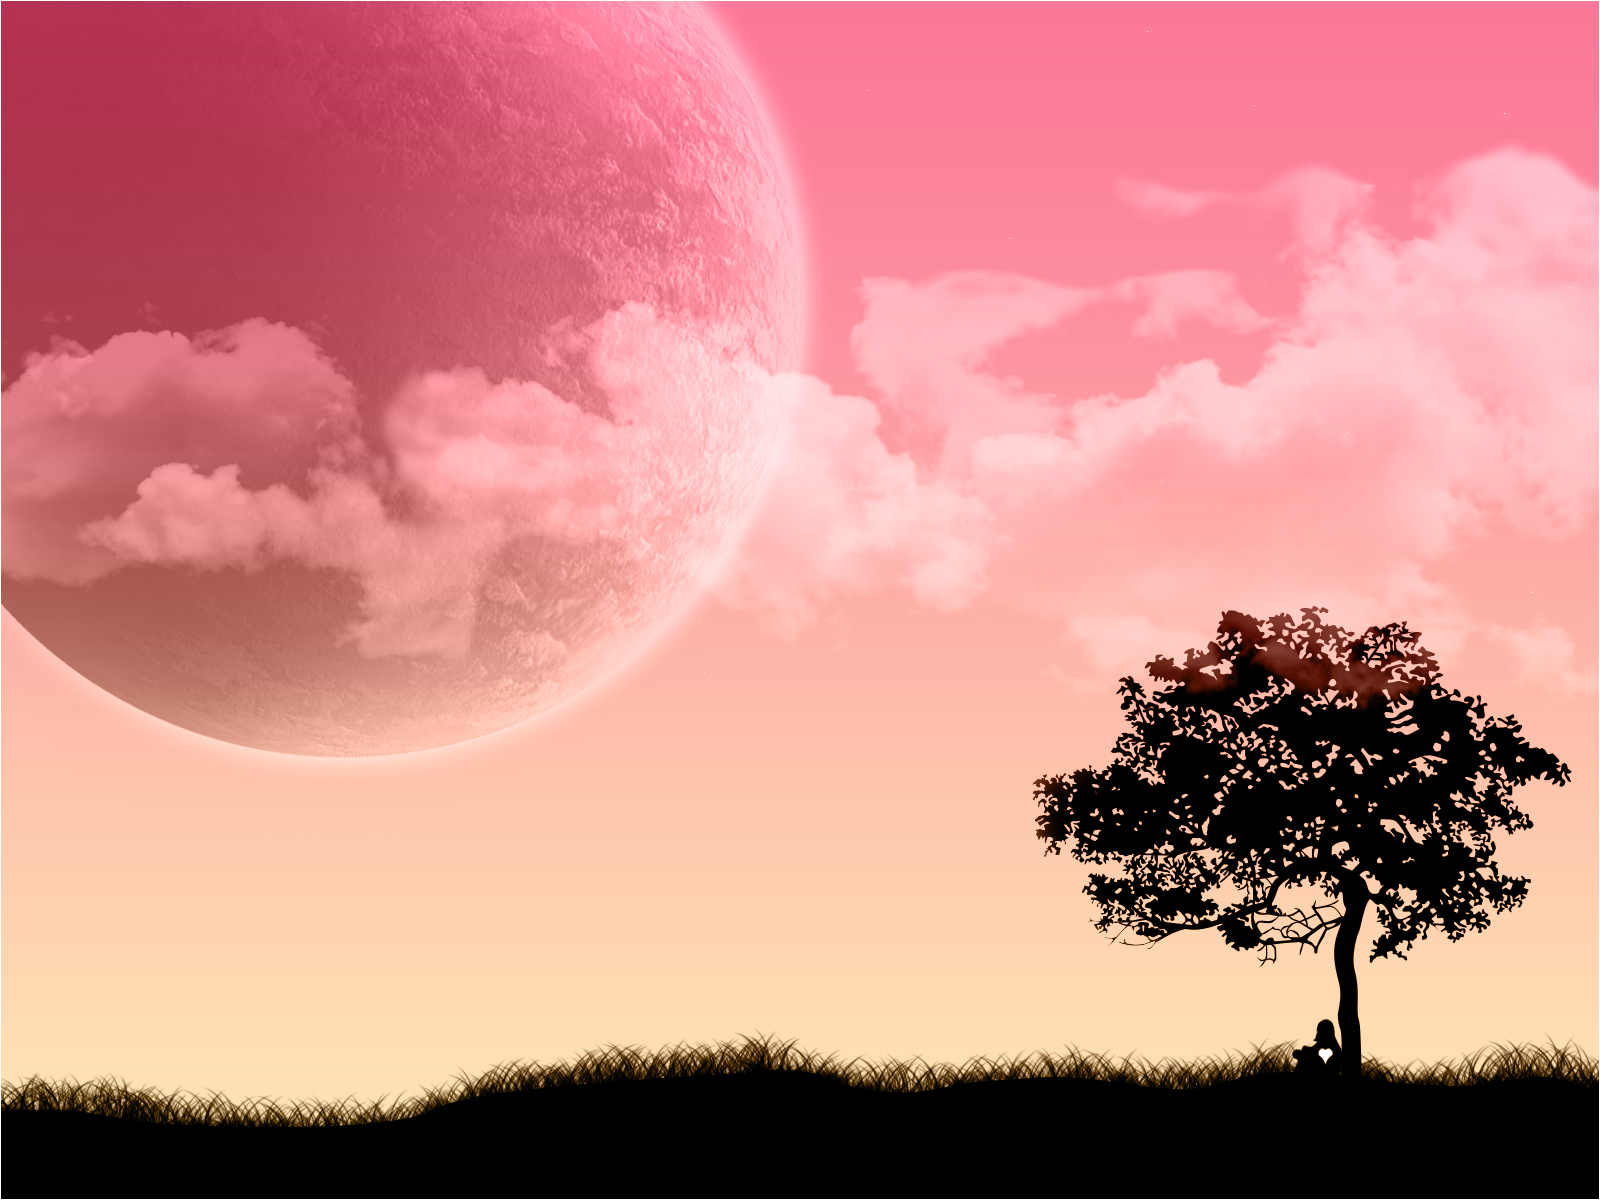 1600x1200 Pink Dream Desktop Pc And Mac Wallpaper